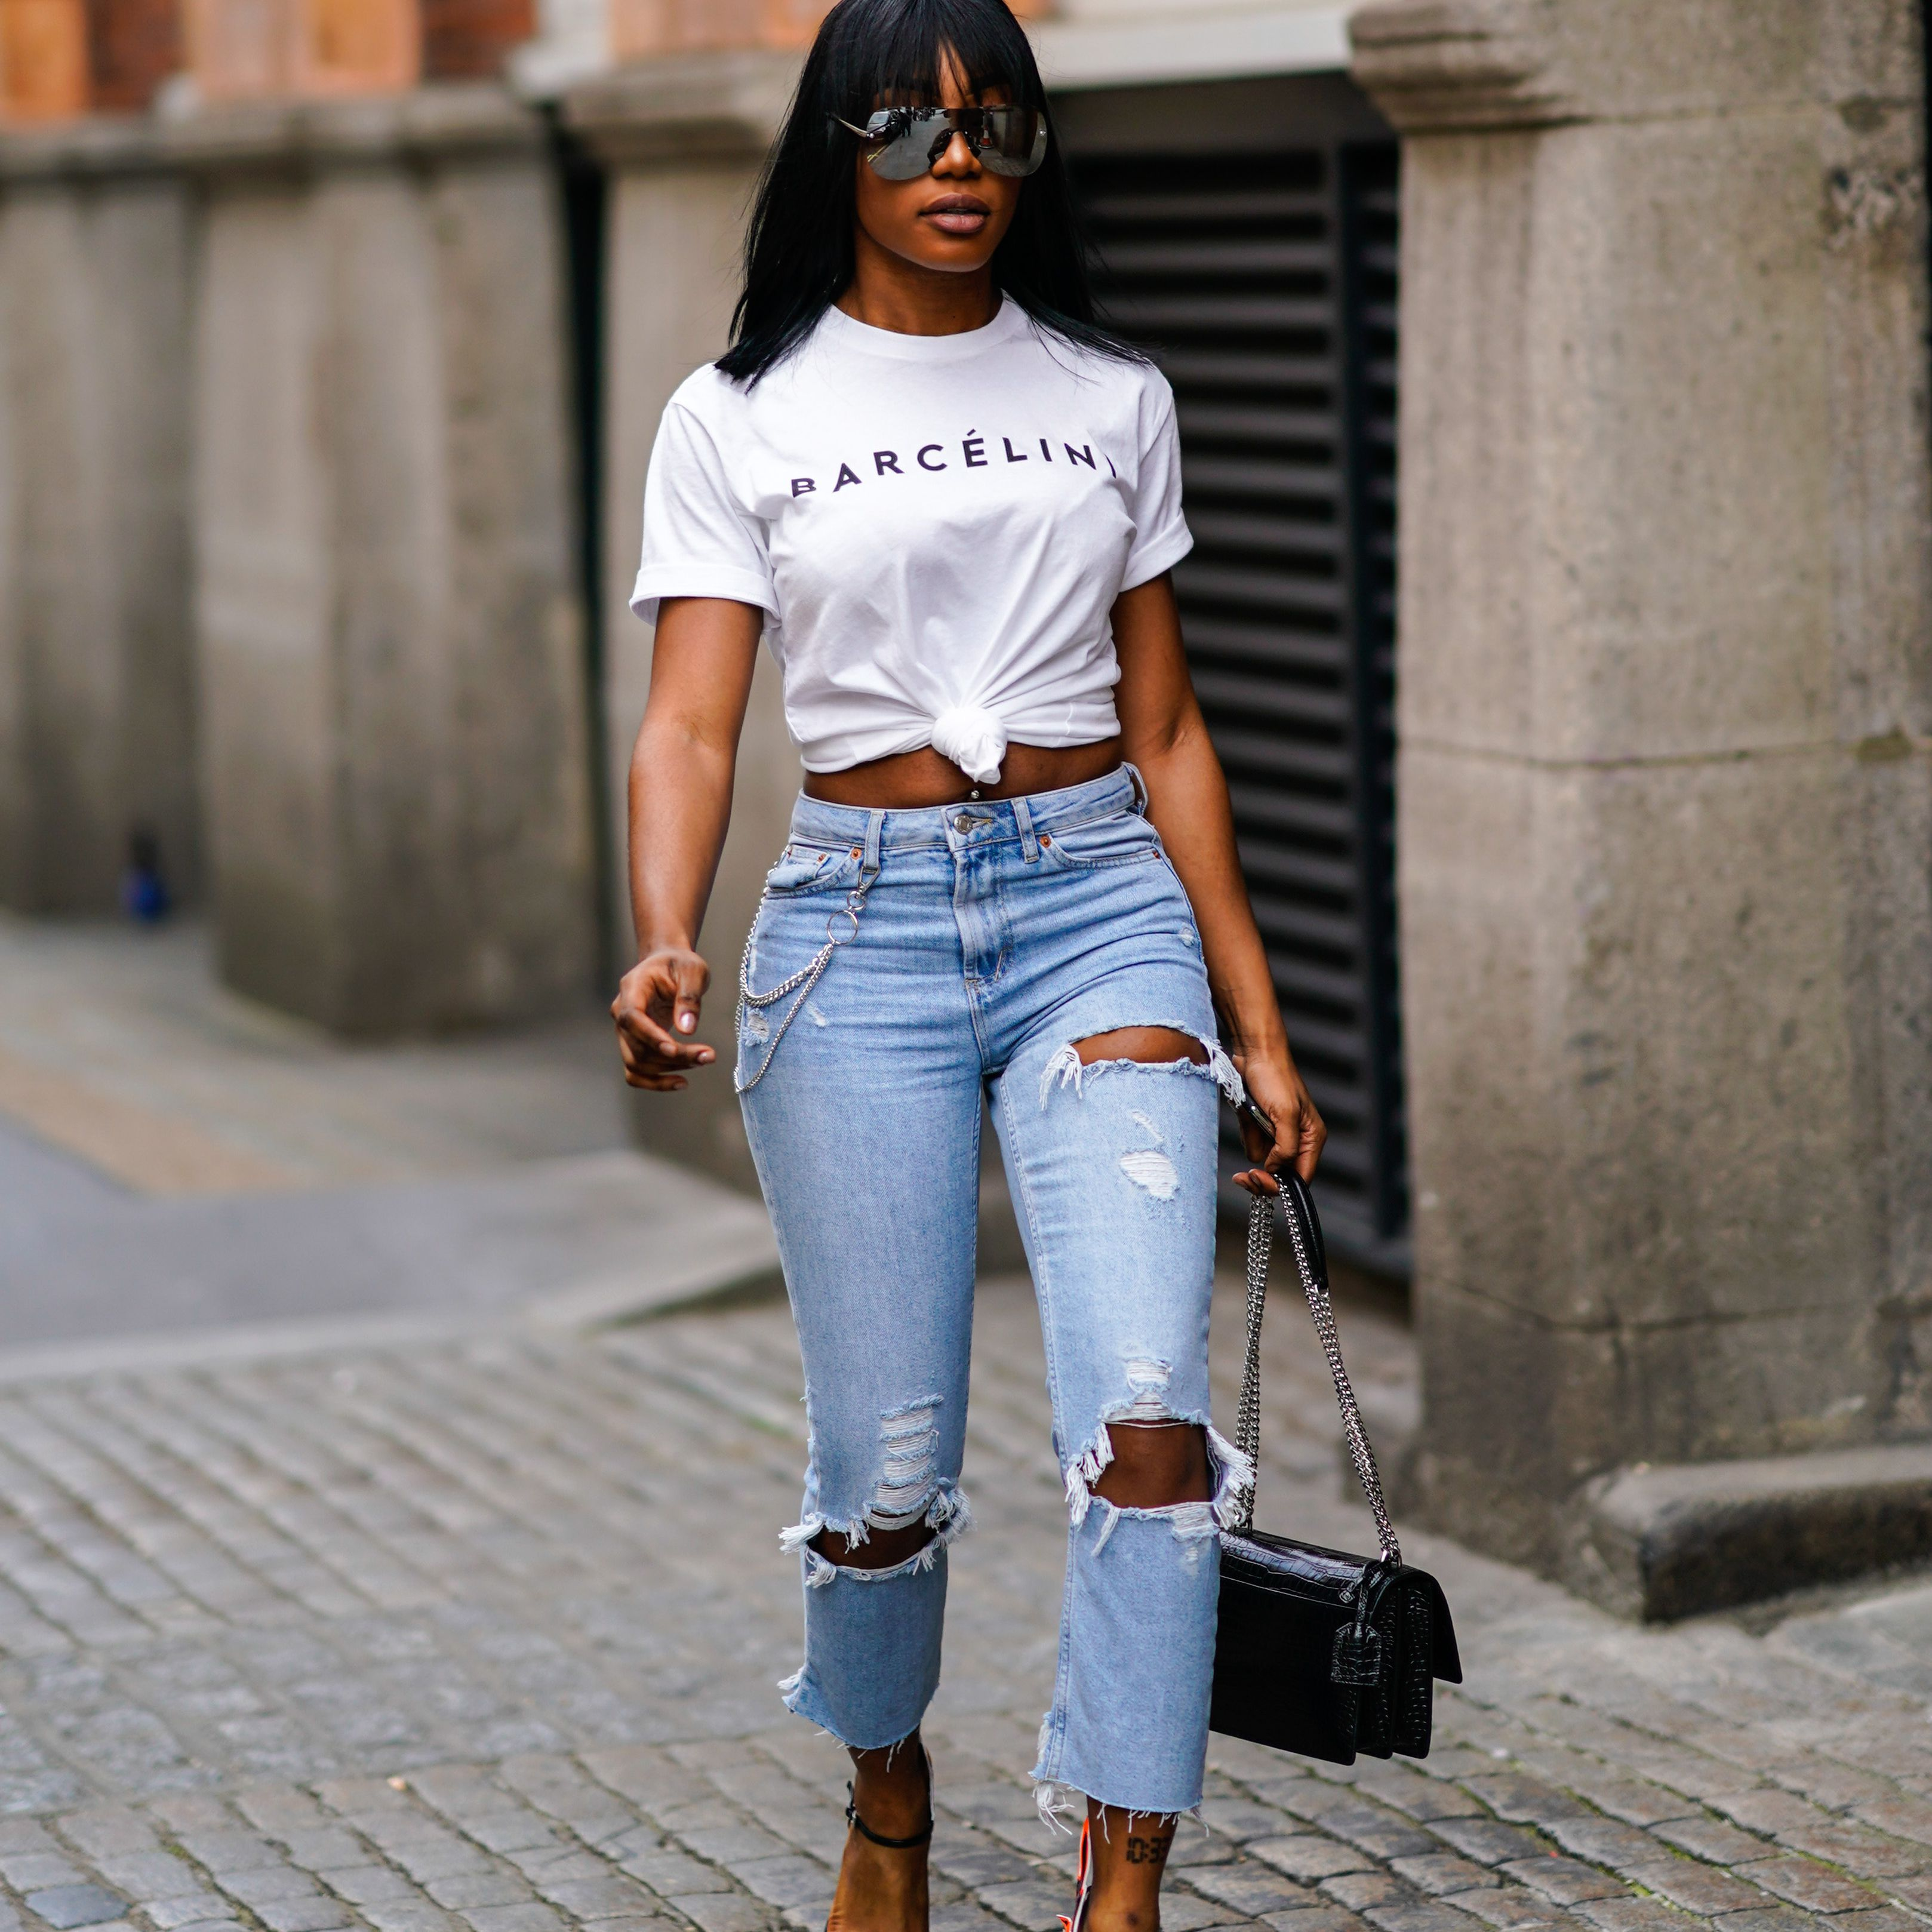 32146bdfb Street style woman in ripped jeans and t-shirt and black leather purse